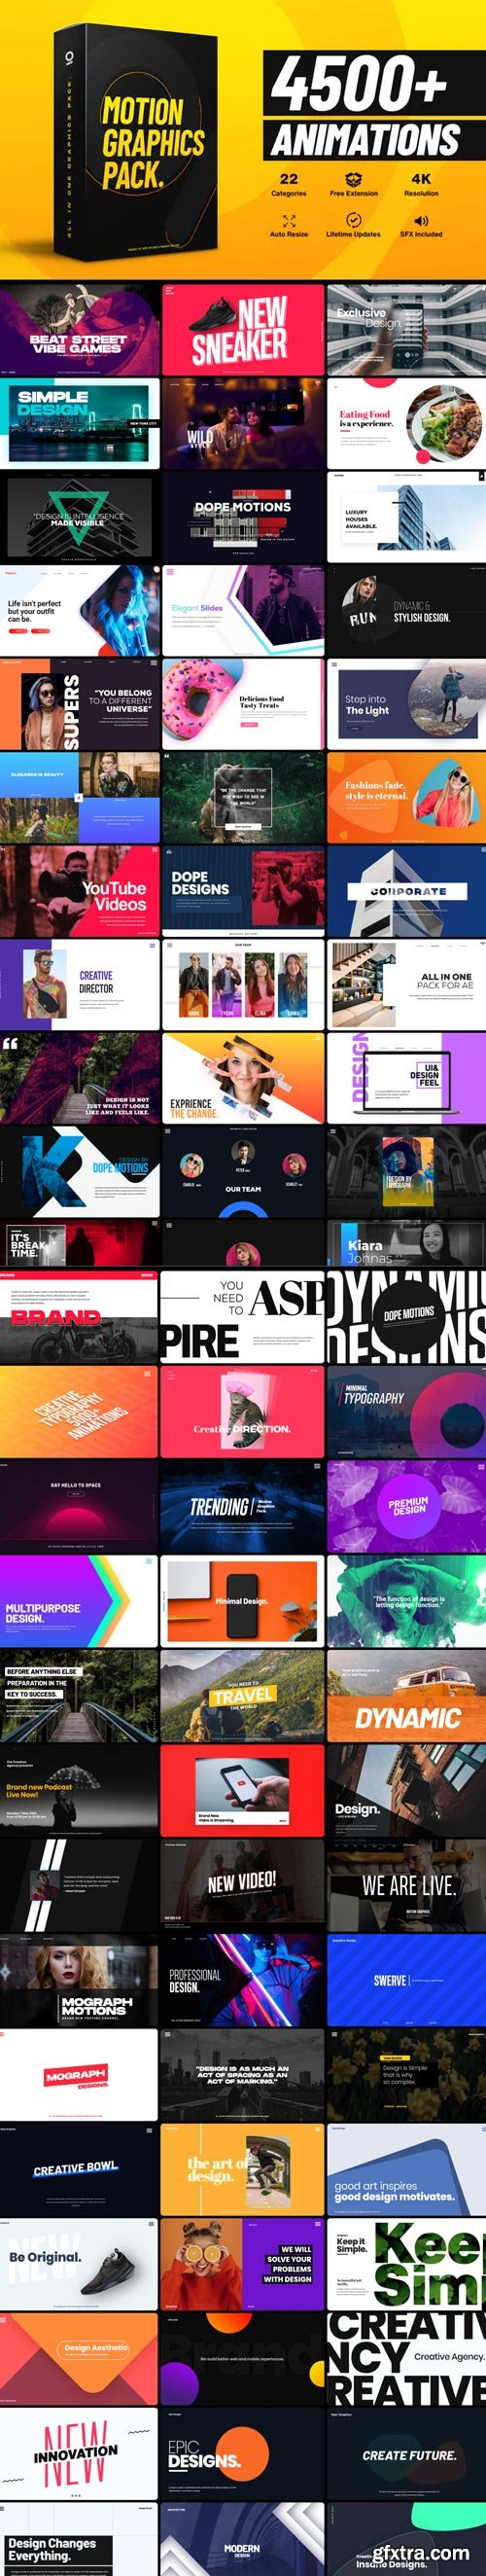 Videohive - 4500+ Graphics Pack V5 - 25010010